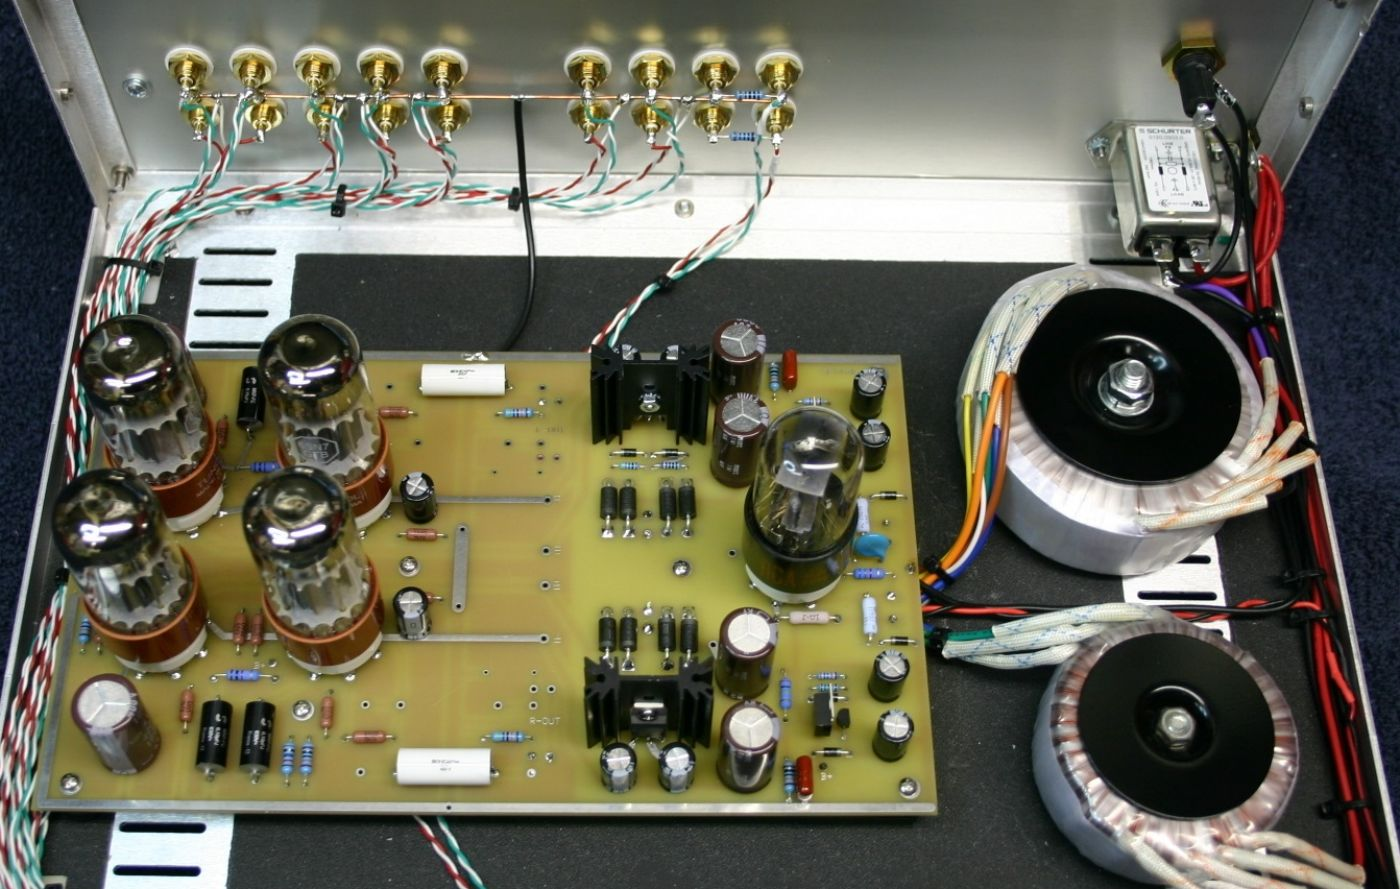 Generation Of  puters 25845330 together with 50 Watt Oscillator Vacuum Tube together with Nagra Jazz besides STEM art as well Product Photo. on vacuum tubes